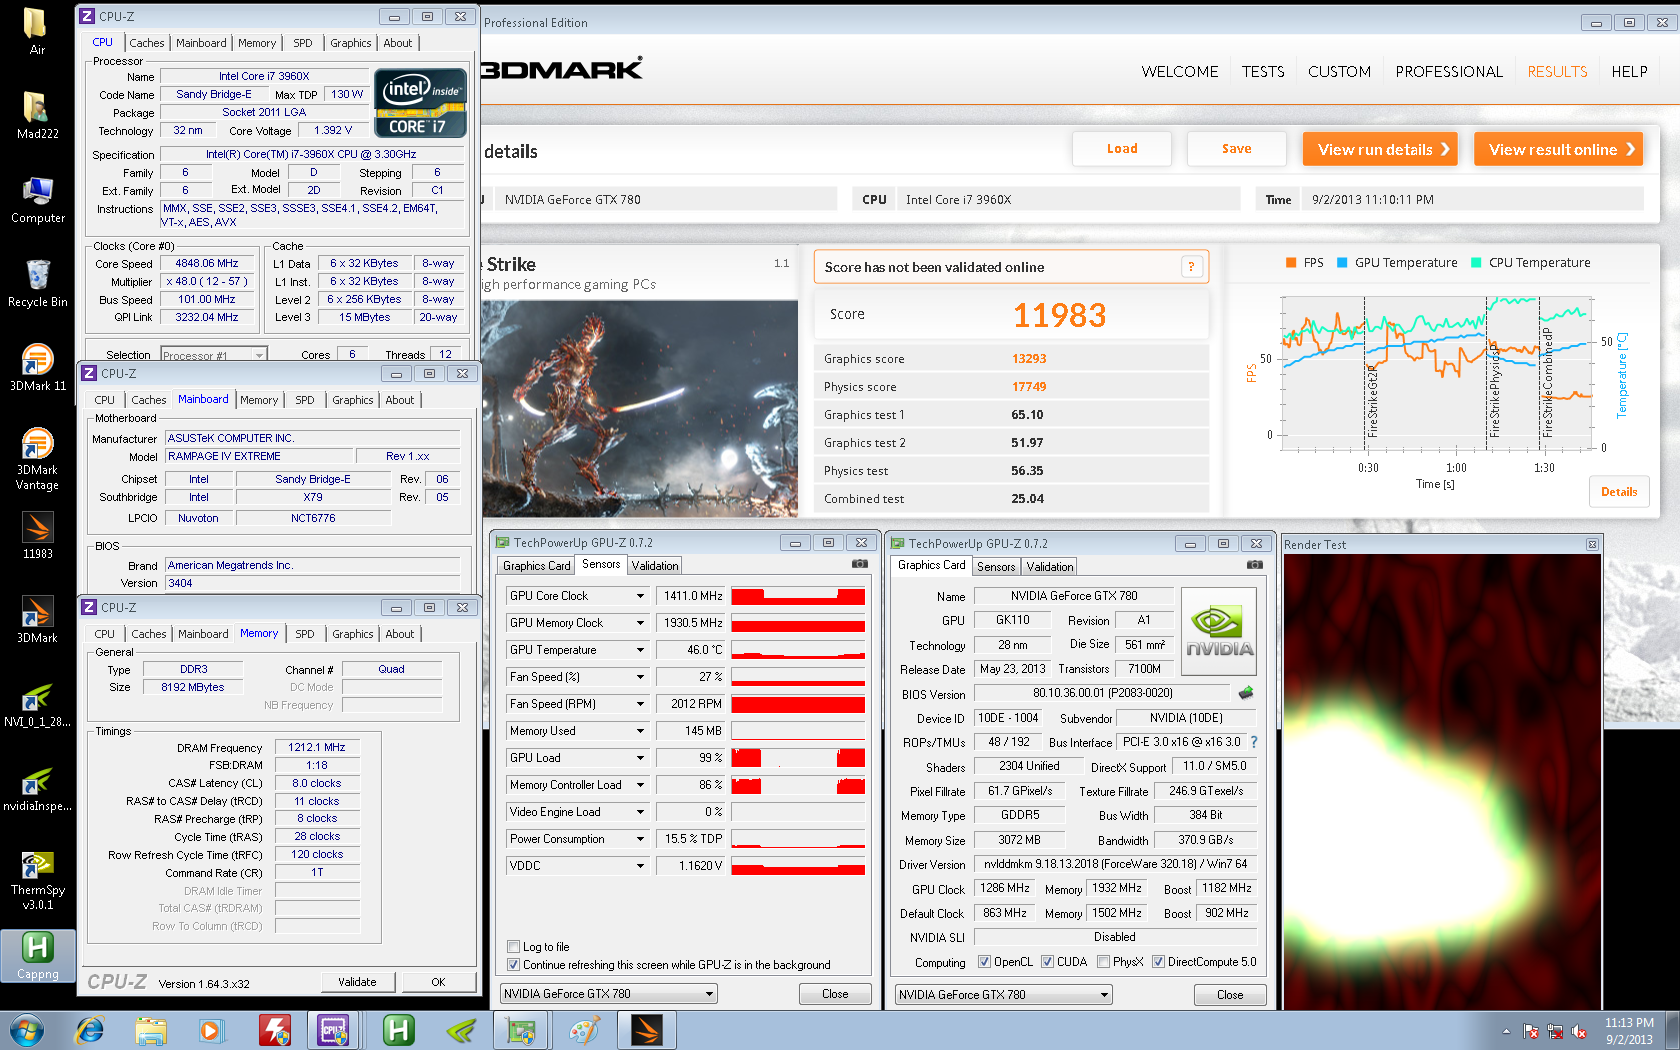 GeForce GTX780 HOF